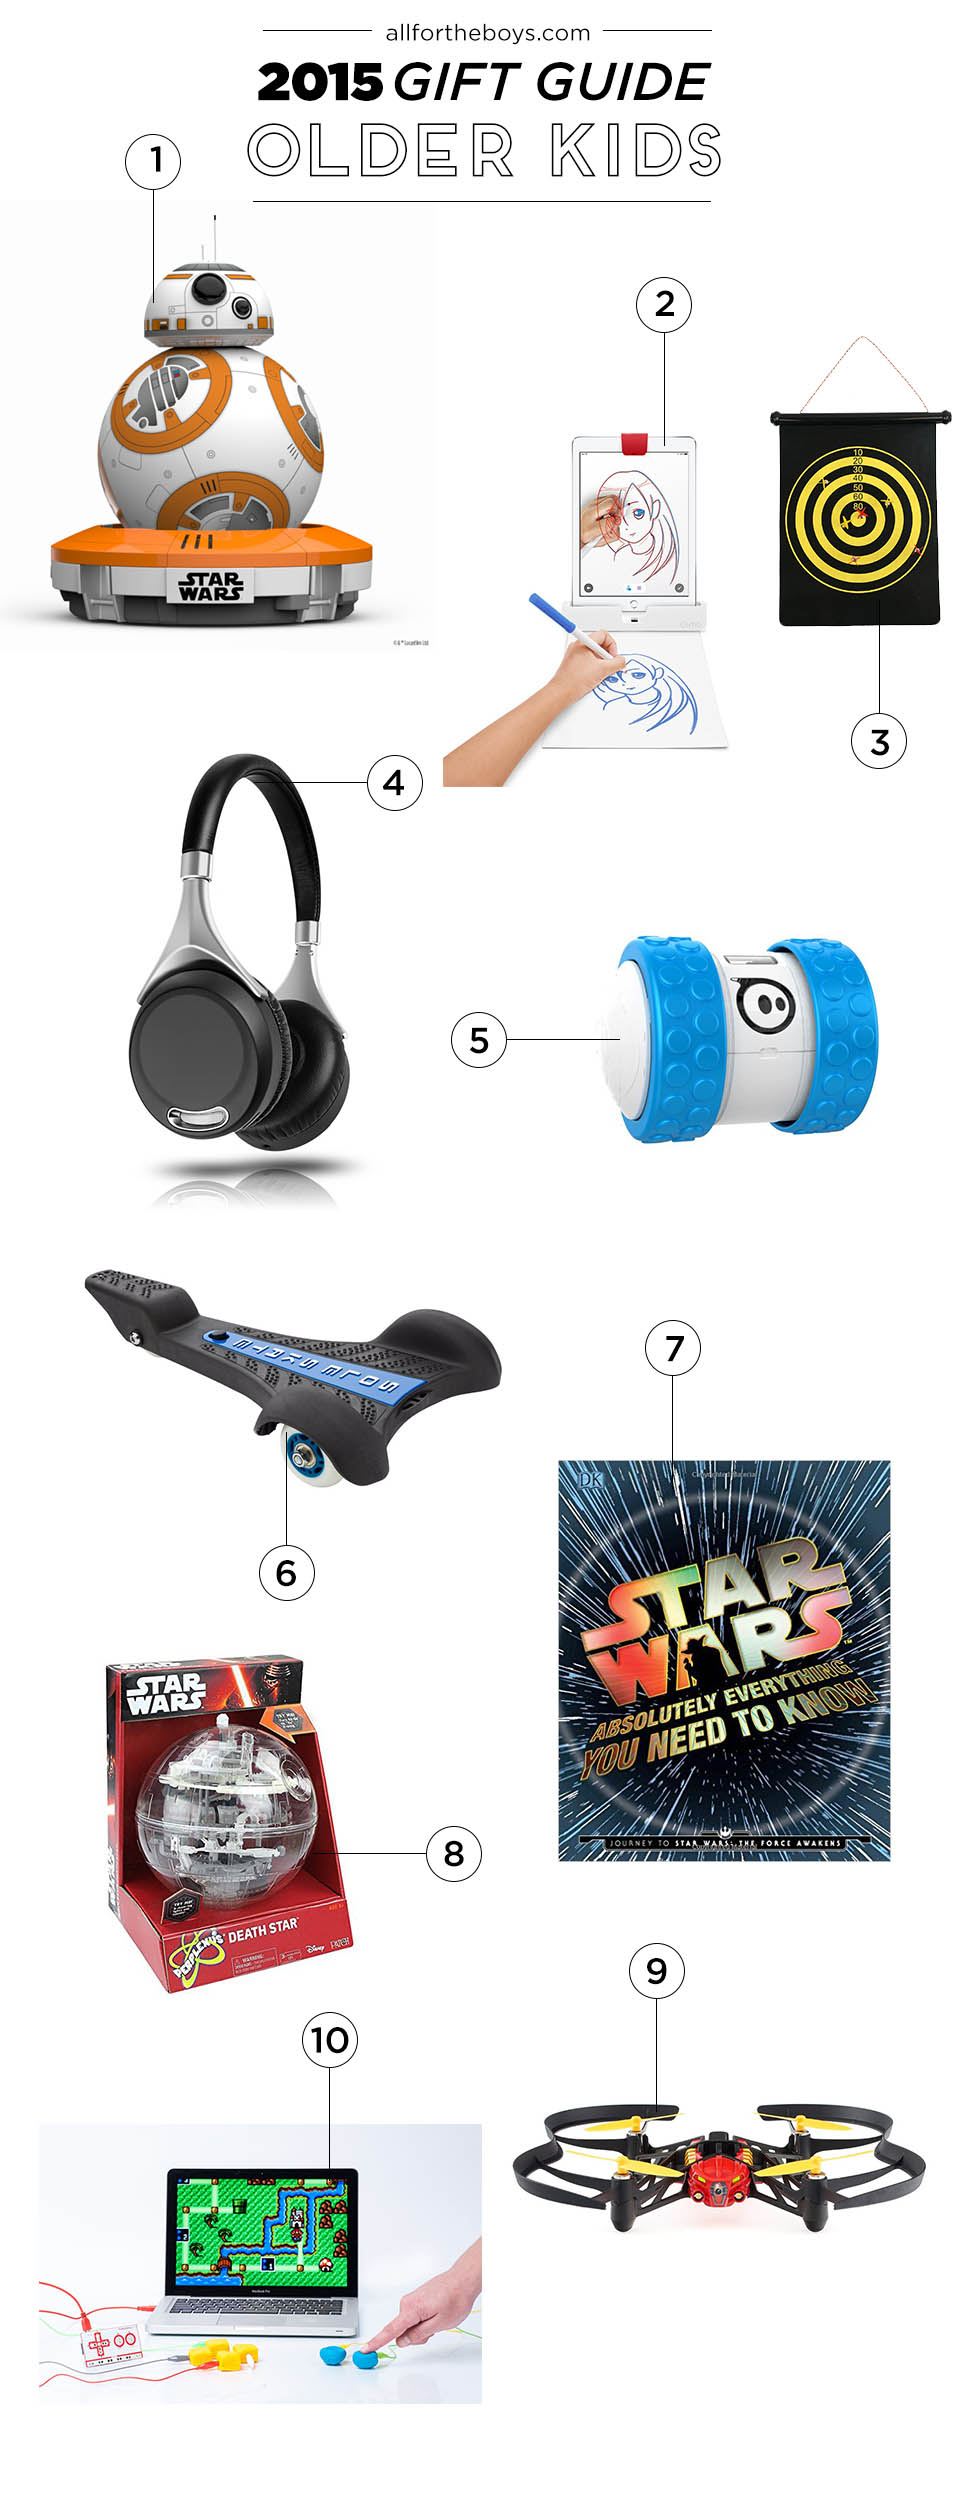 A gift guide for older kids - maybe 8 to teen? Great general ideas!